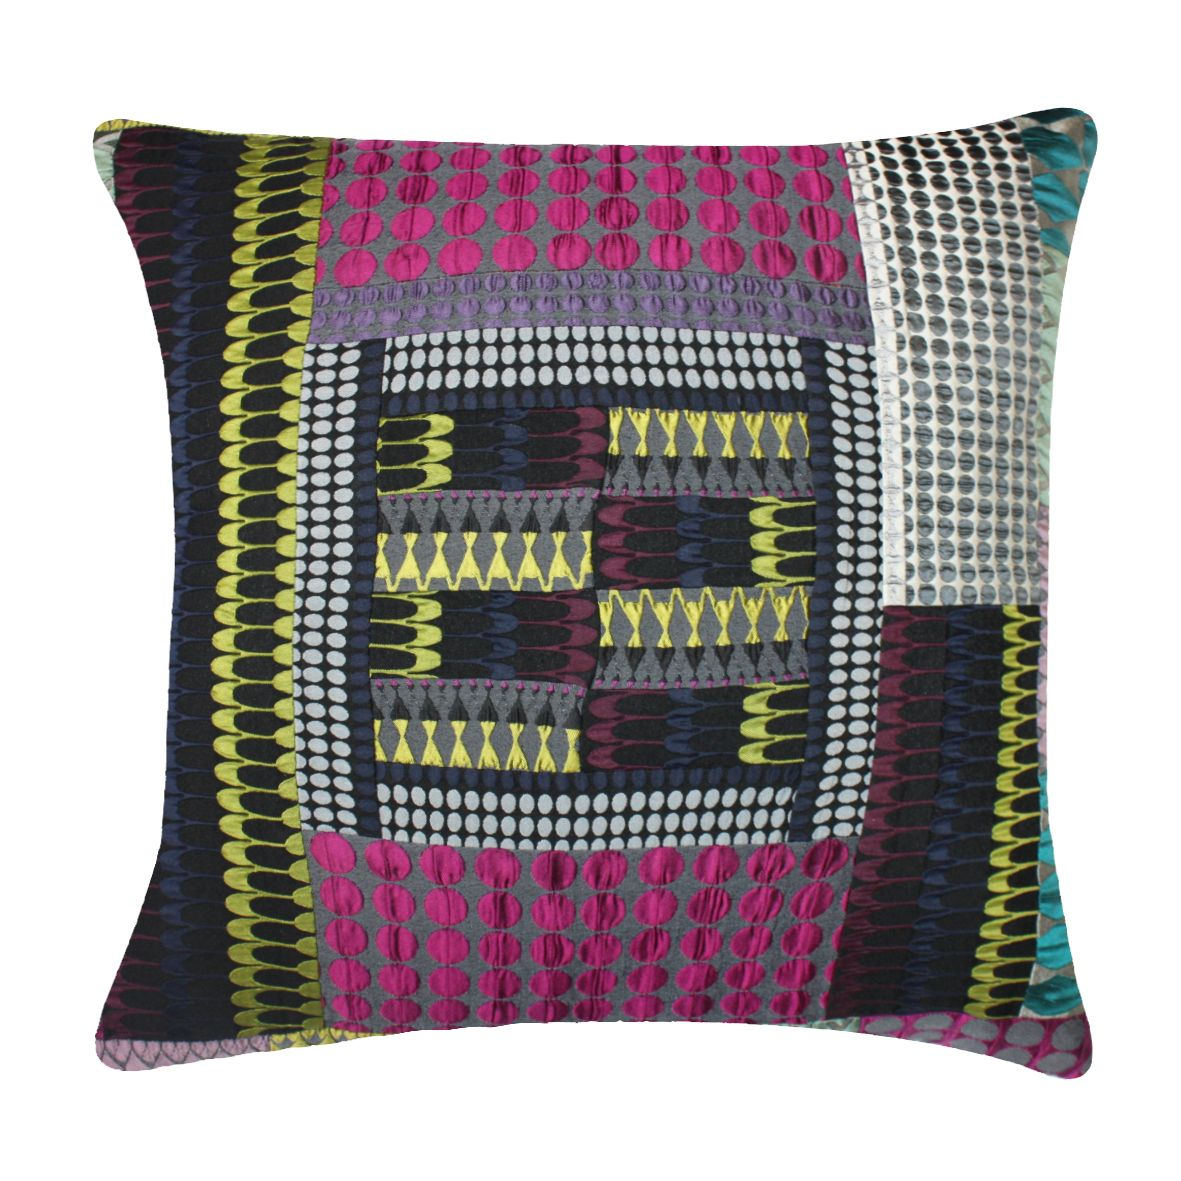 Patchwork cushion @ Margo Selby